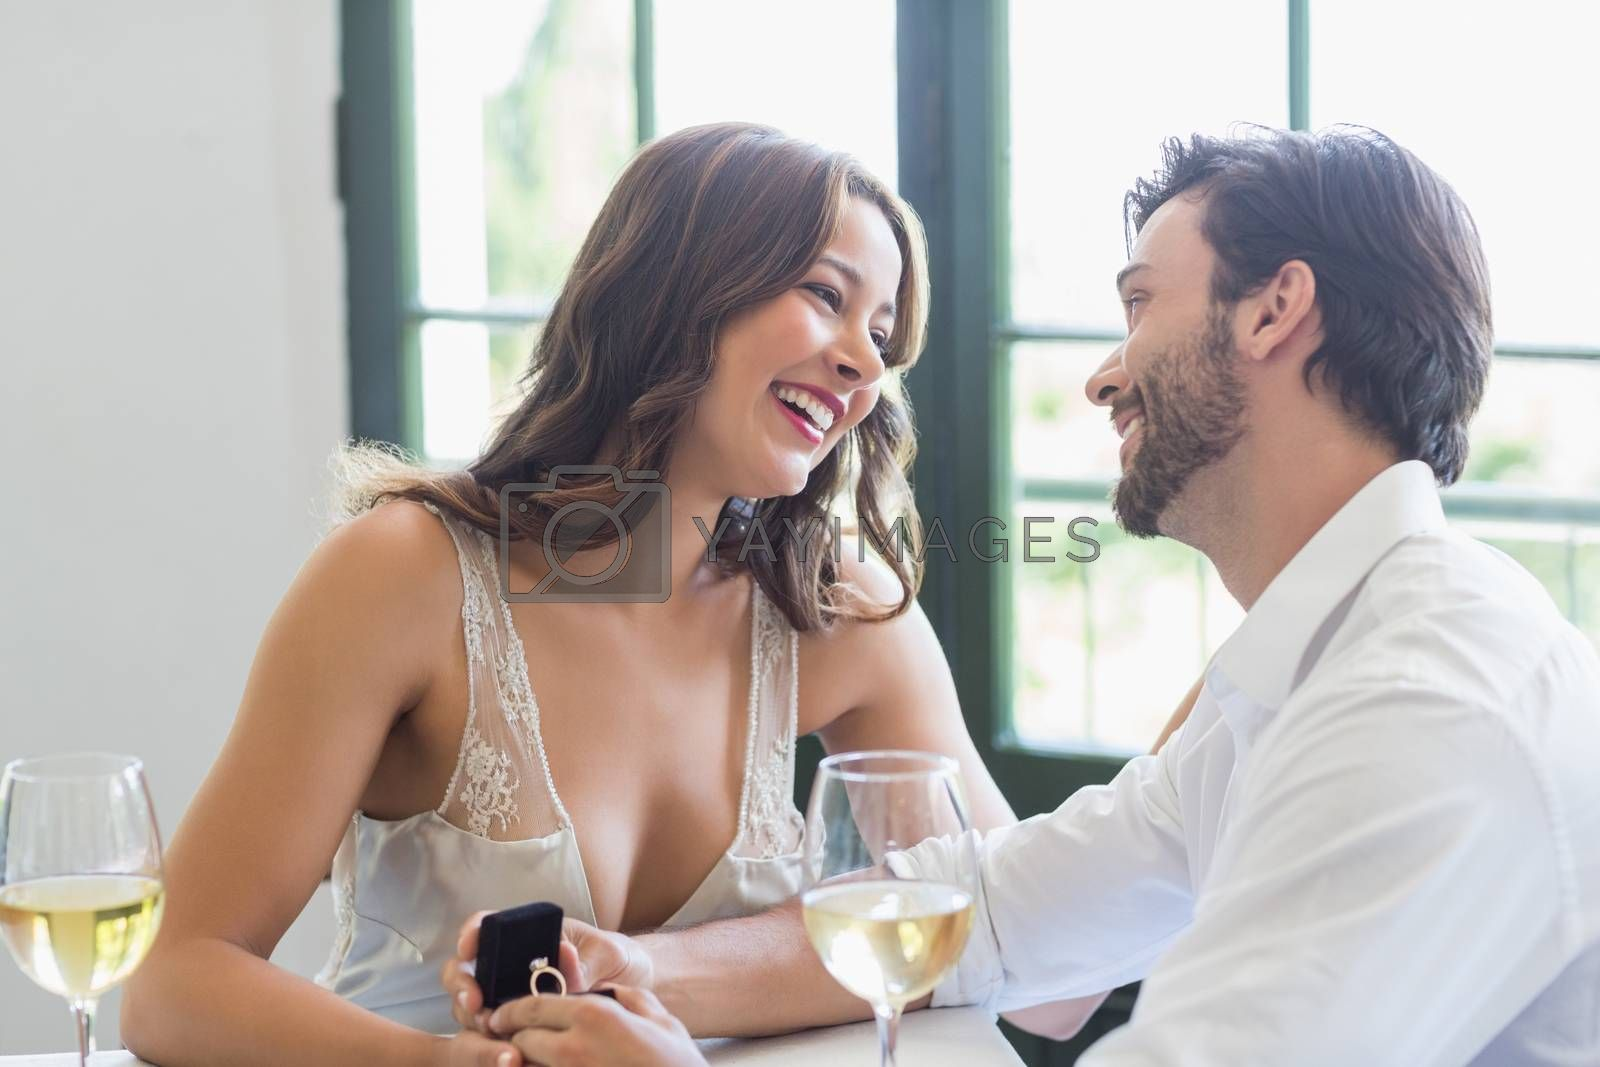 Couple smiling while looking at each other in the restaurant